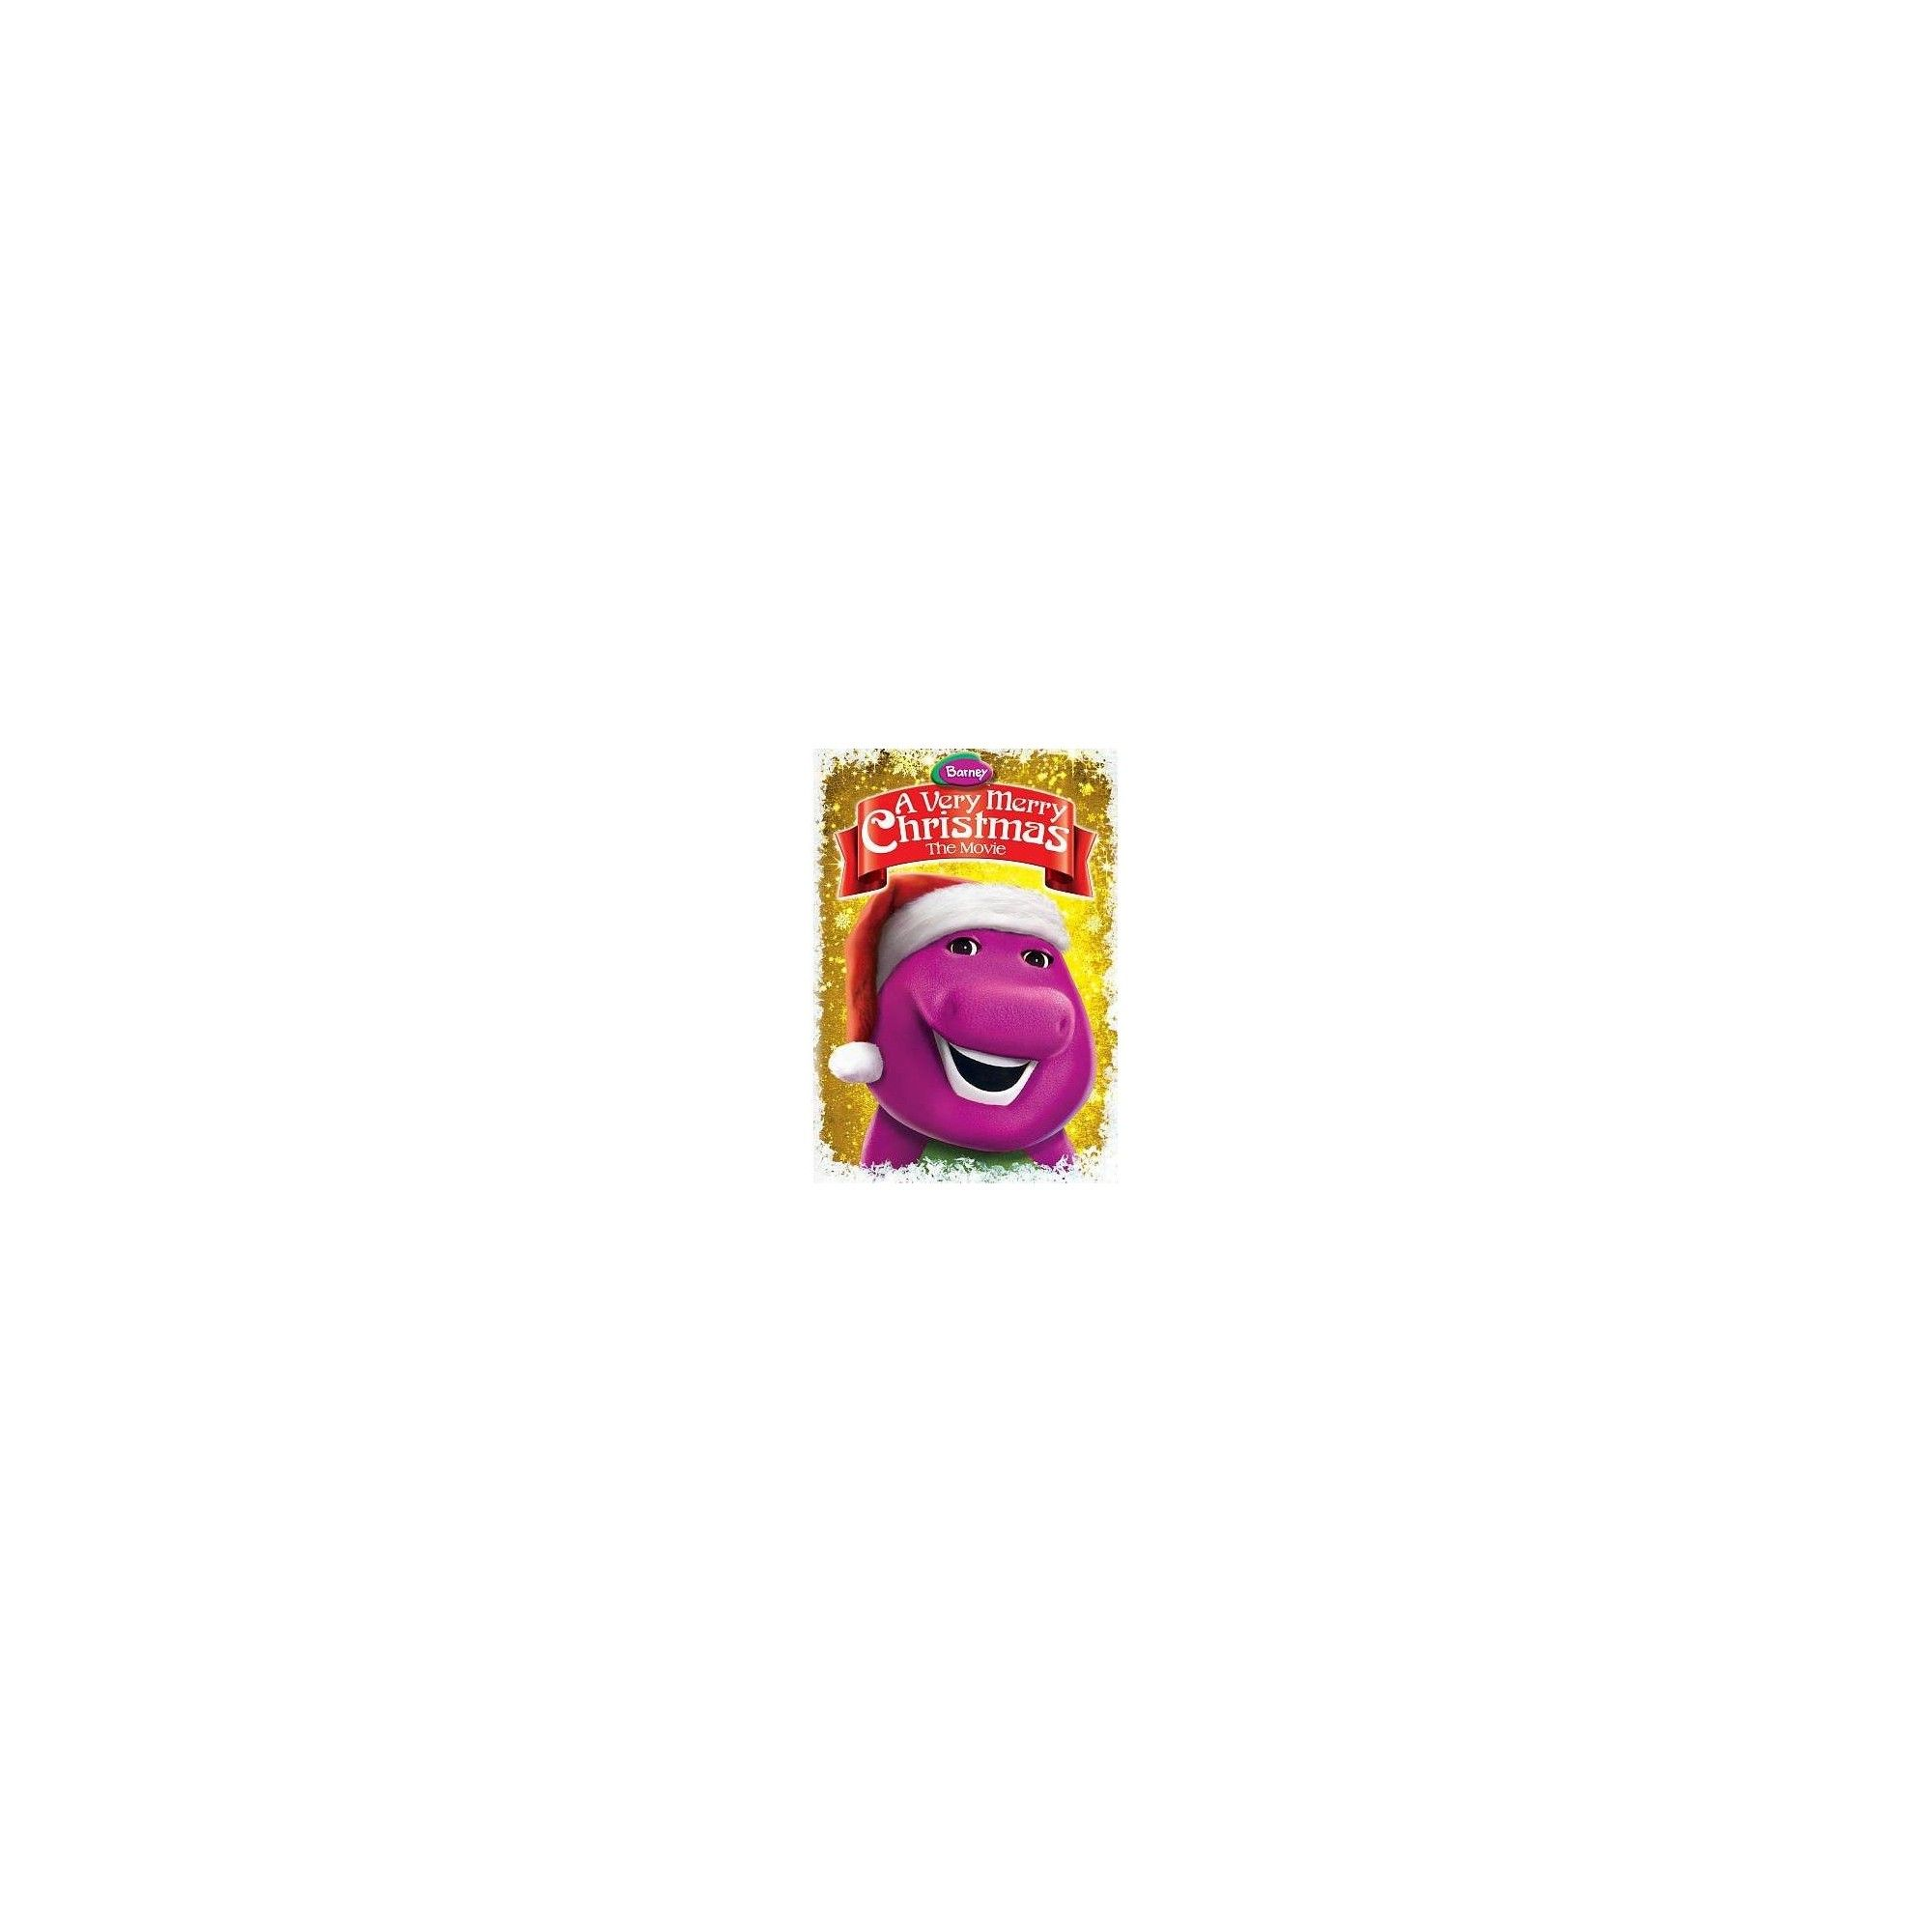 Barney A Very Merry Christmas The Movie Dvd.Barney A Very Merry Christmas The Movie Dvd Products In